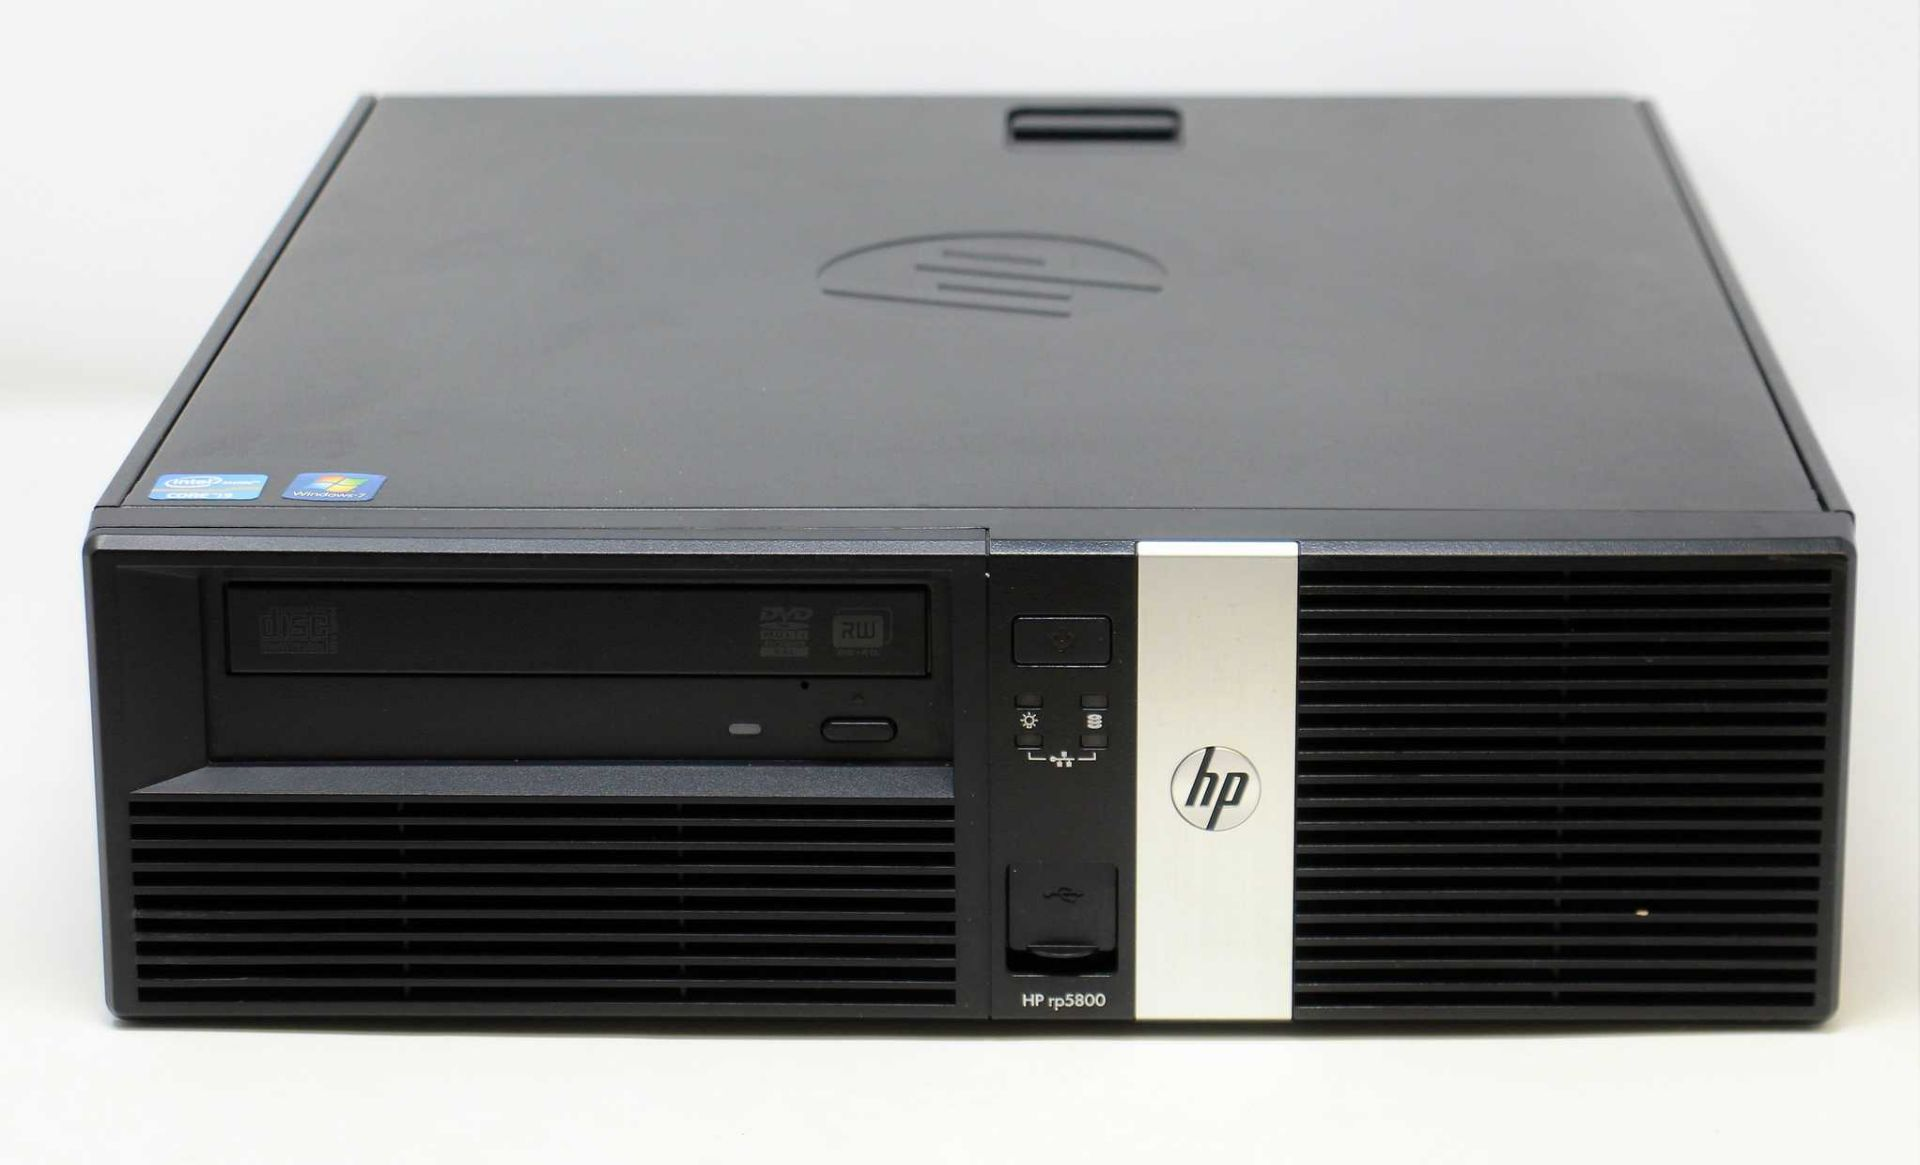 A pre-owned HP rp5800 Retail System with Intel i3 3.3GHz, 8GB RAM, 500GB HDD running Windows 7 COA.